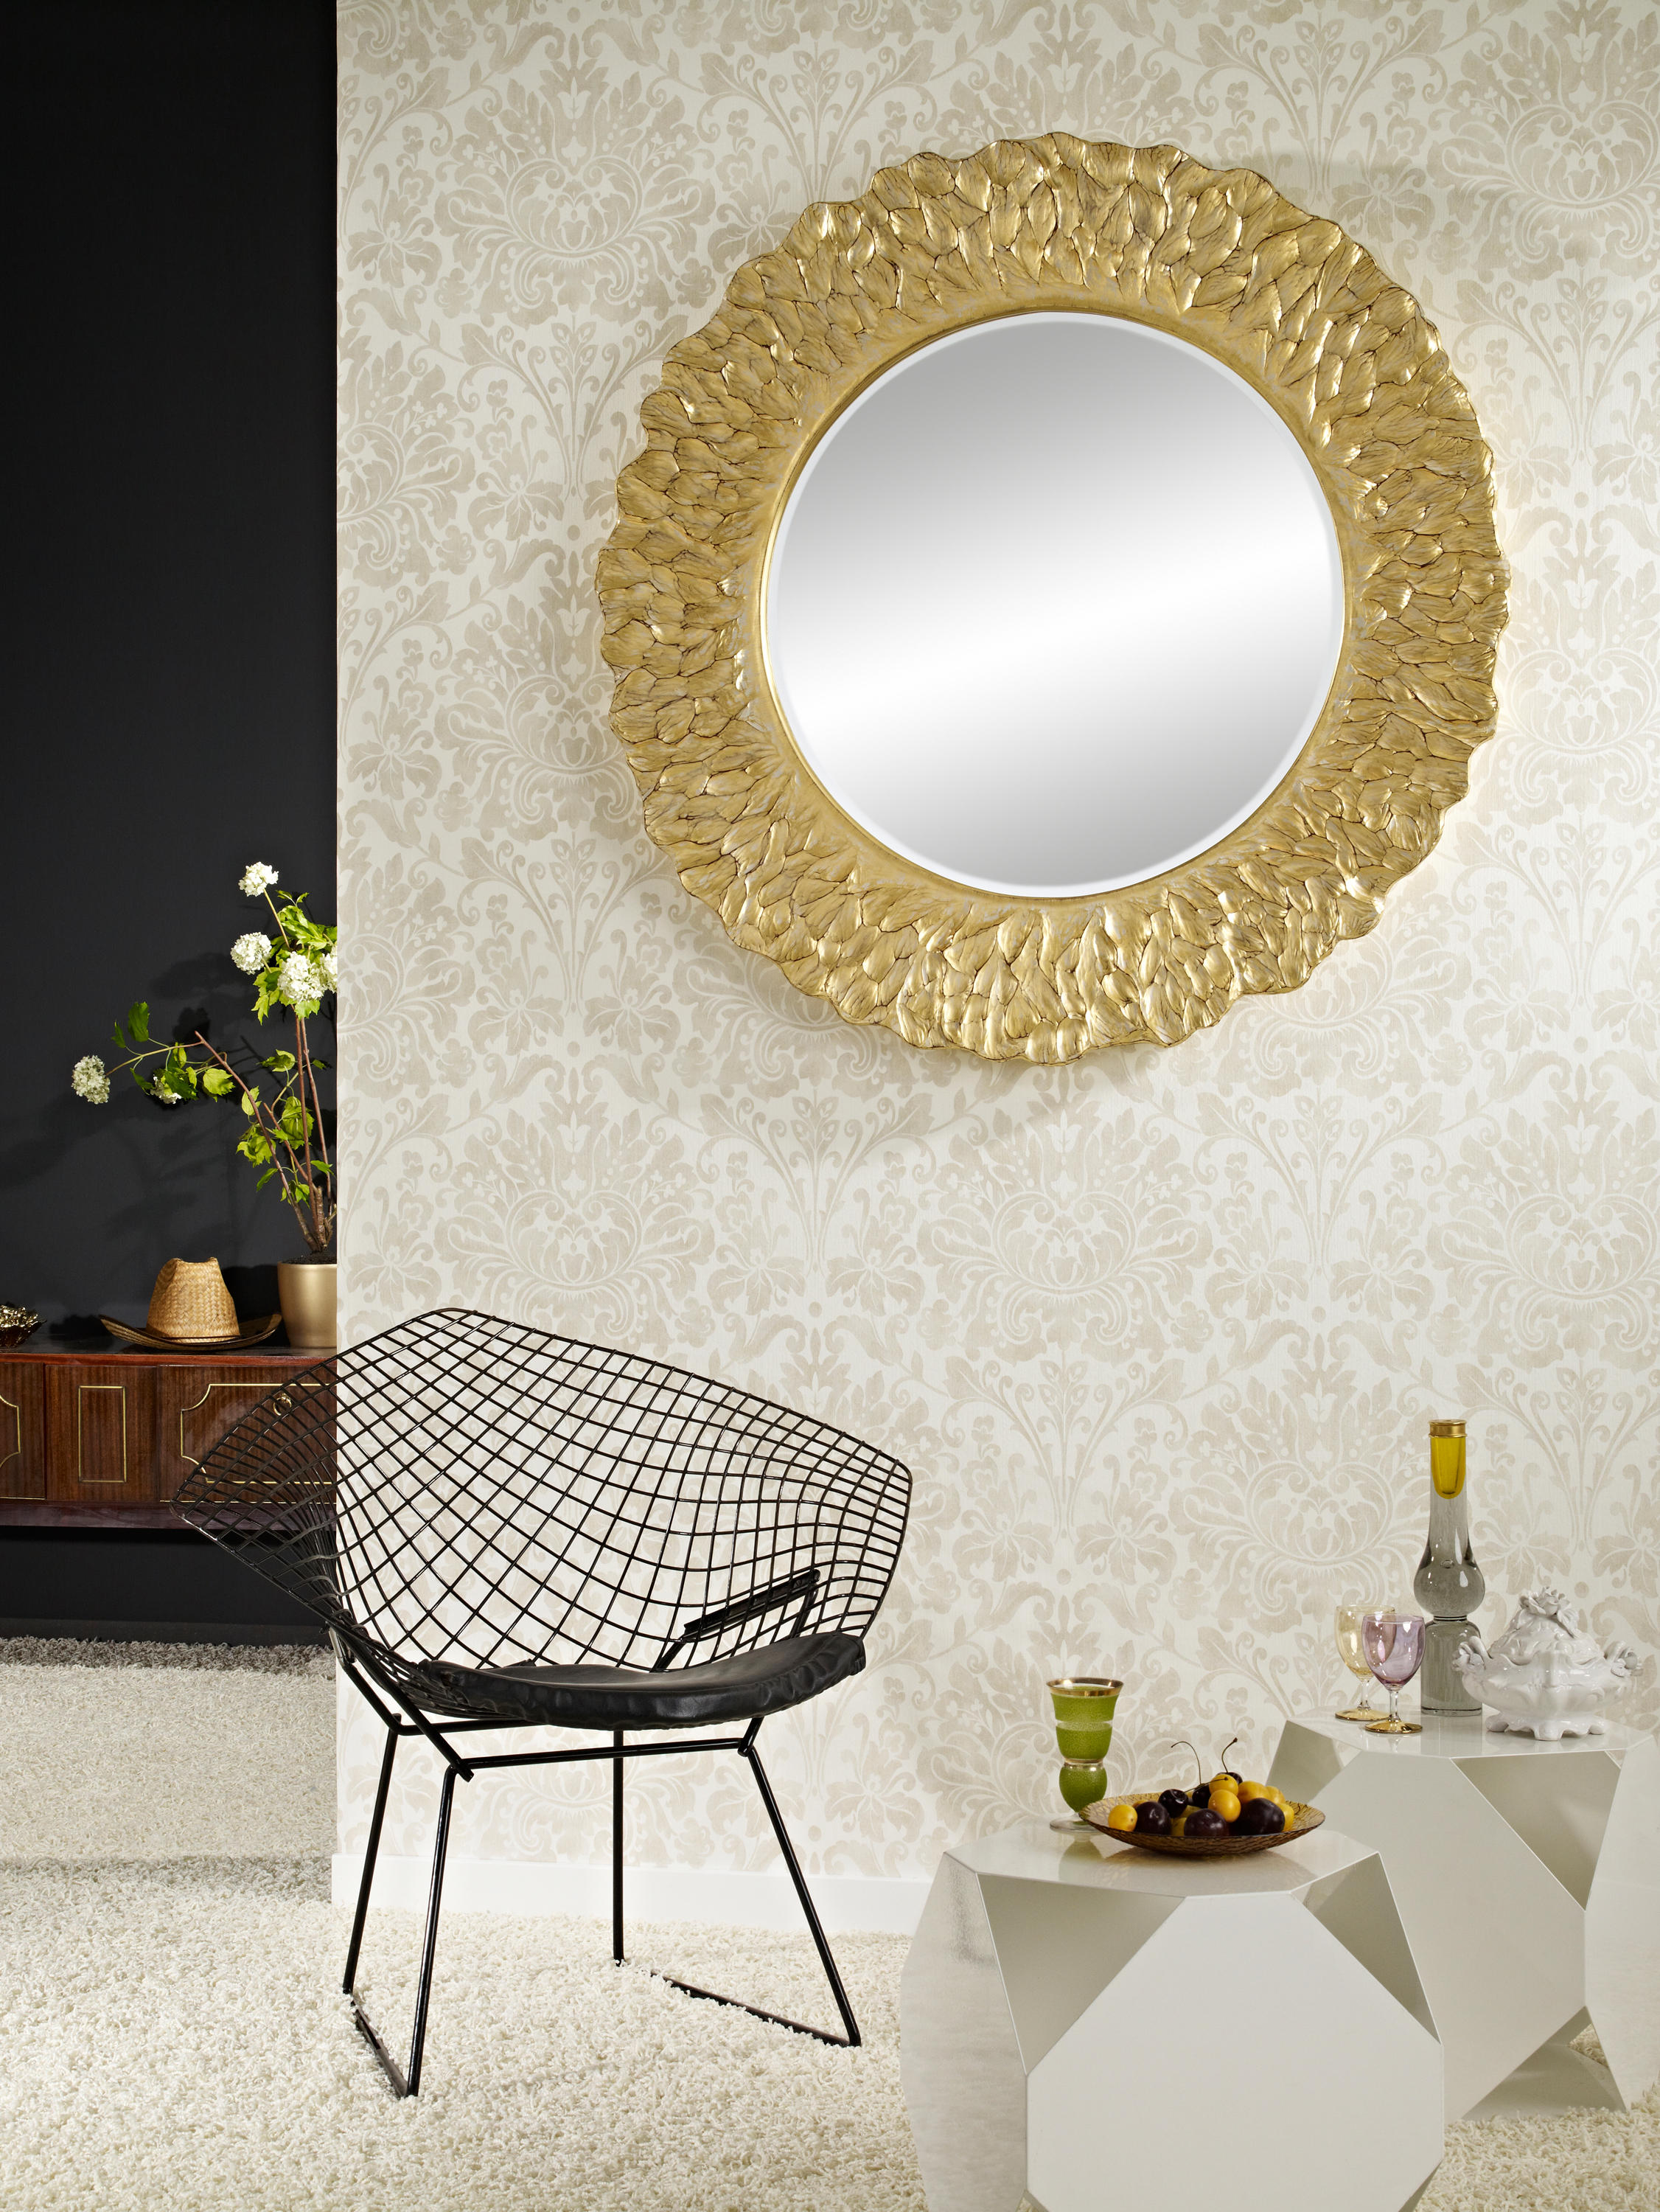 flora gold spiegel von deknudt mirrors architonic. Black Bedroom Furniture Sets. Home Design Ideas